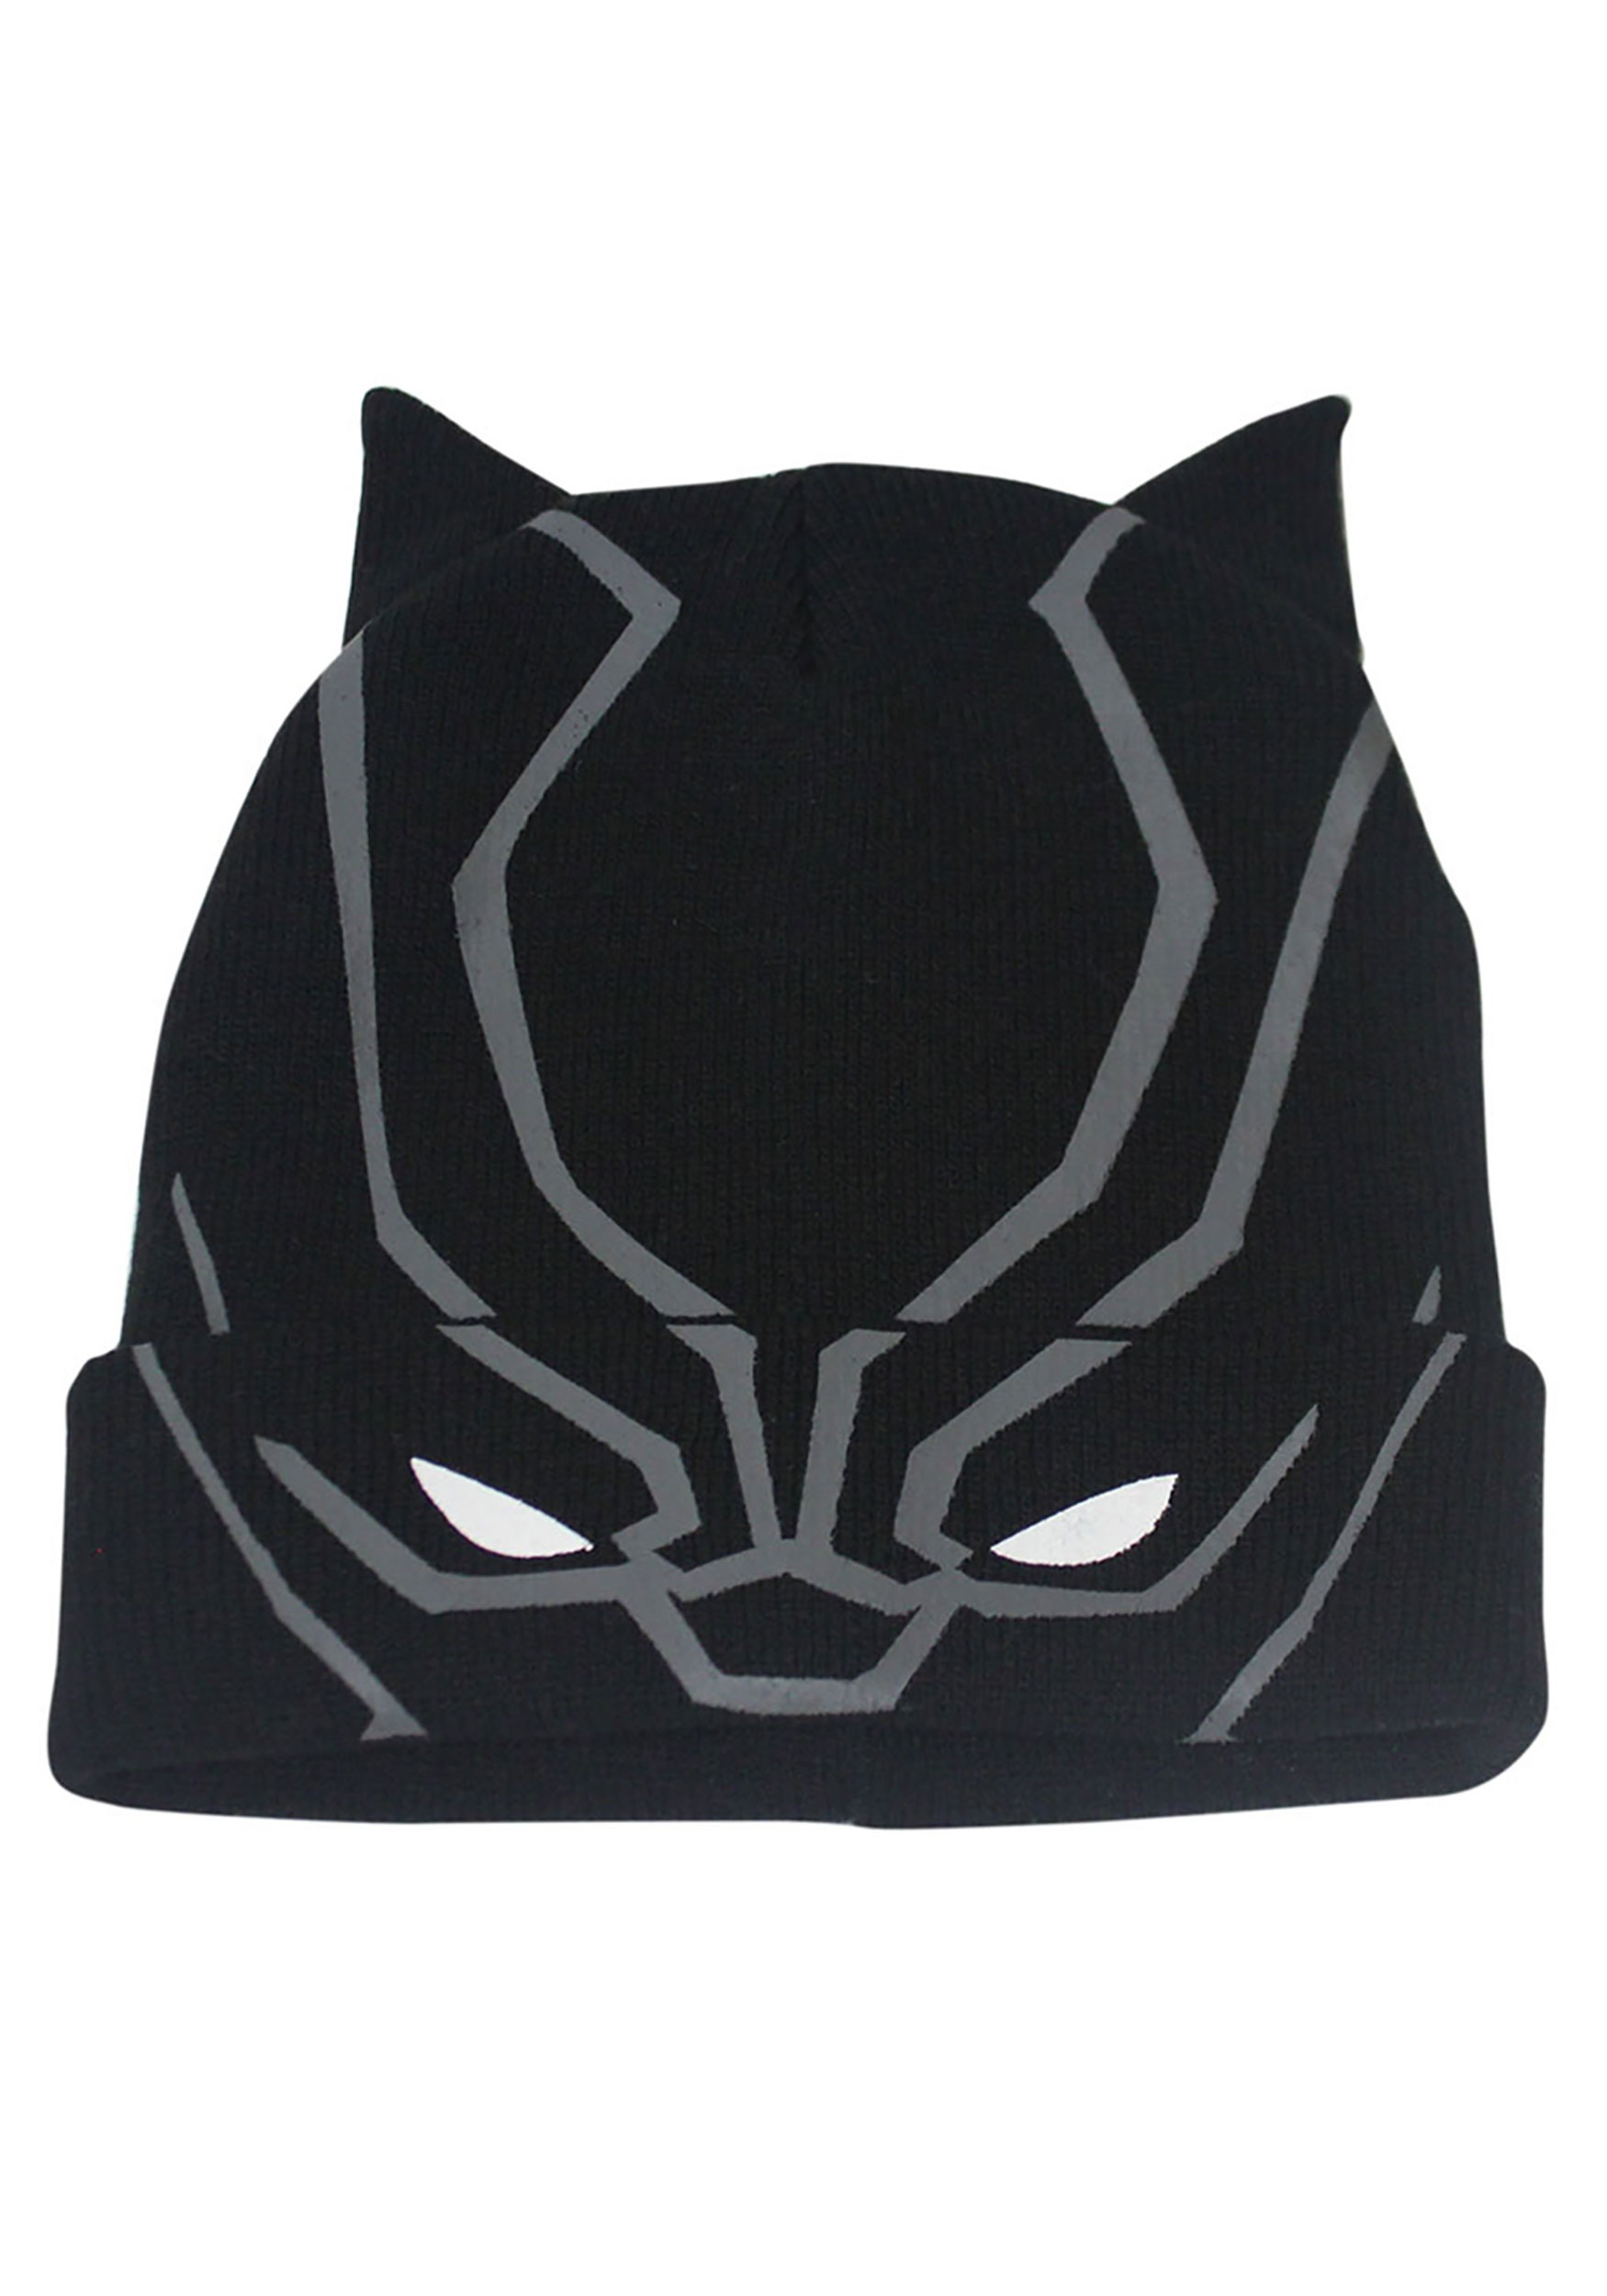 Adults Black Panther Flip Down Knit Beanie